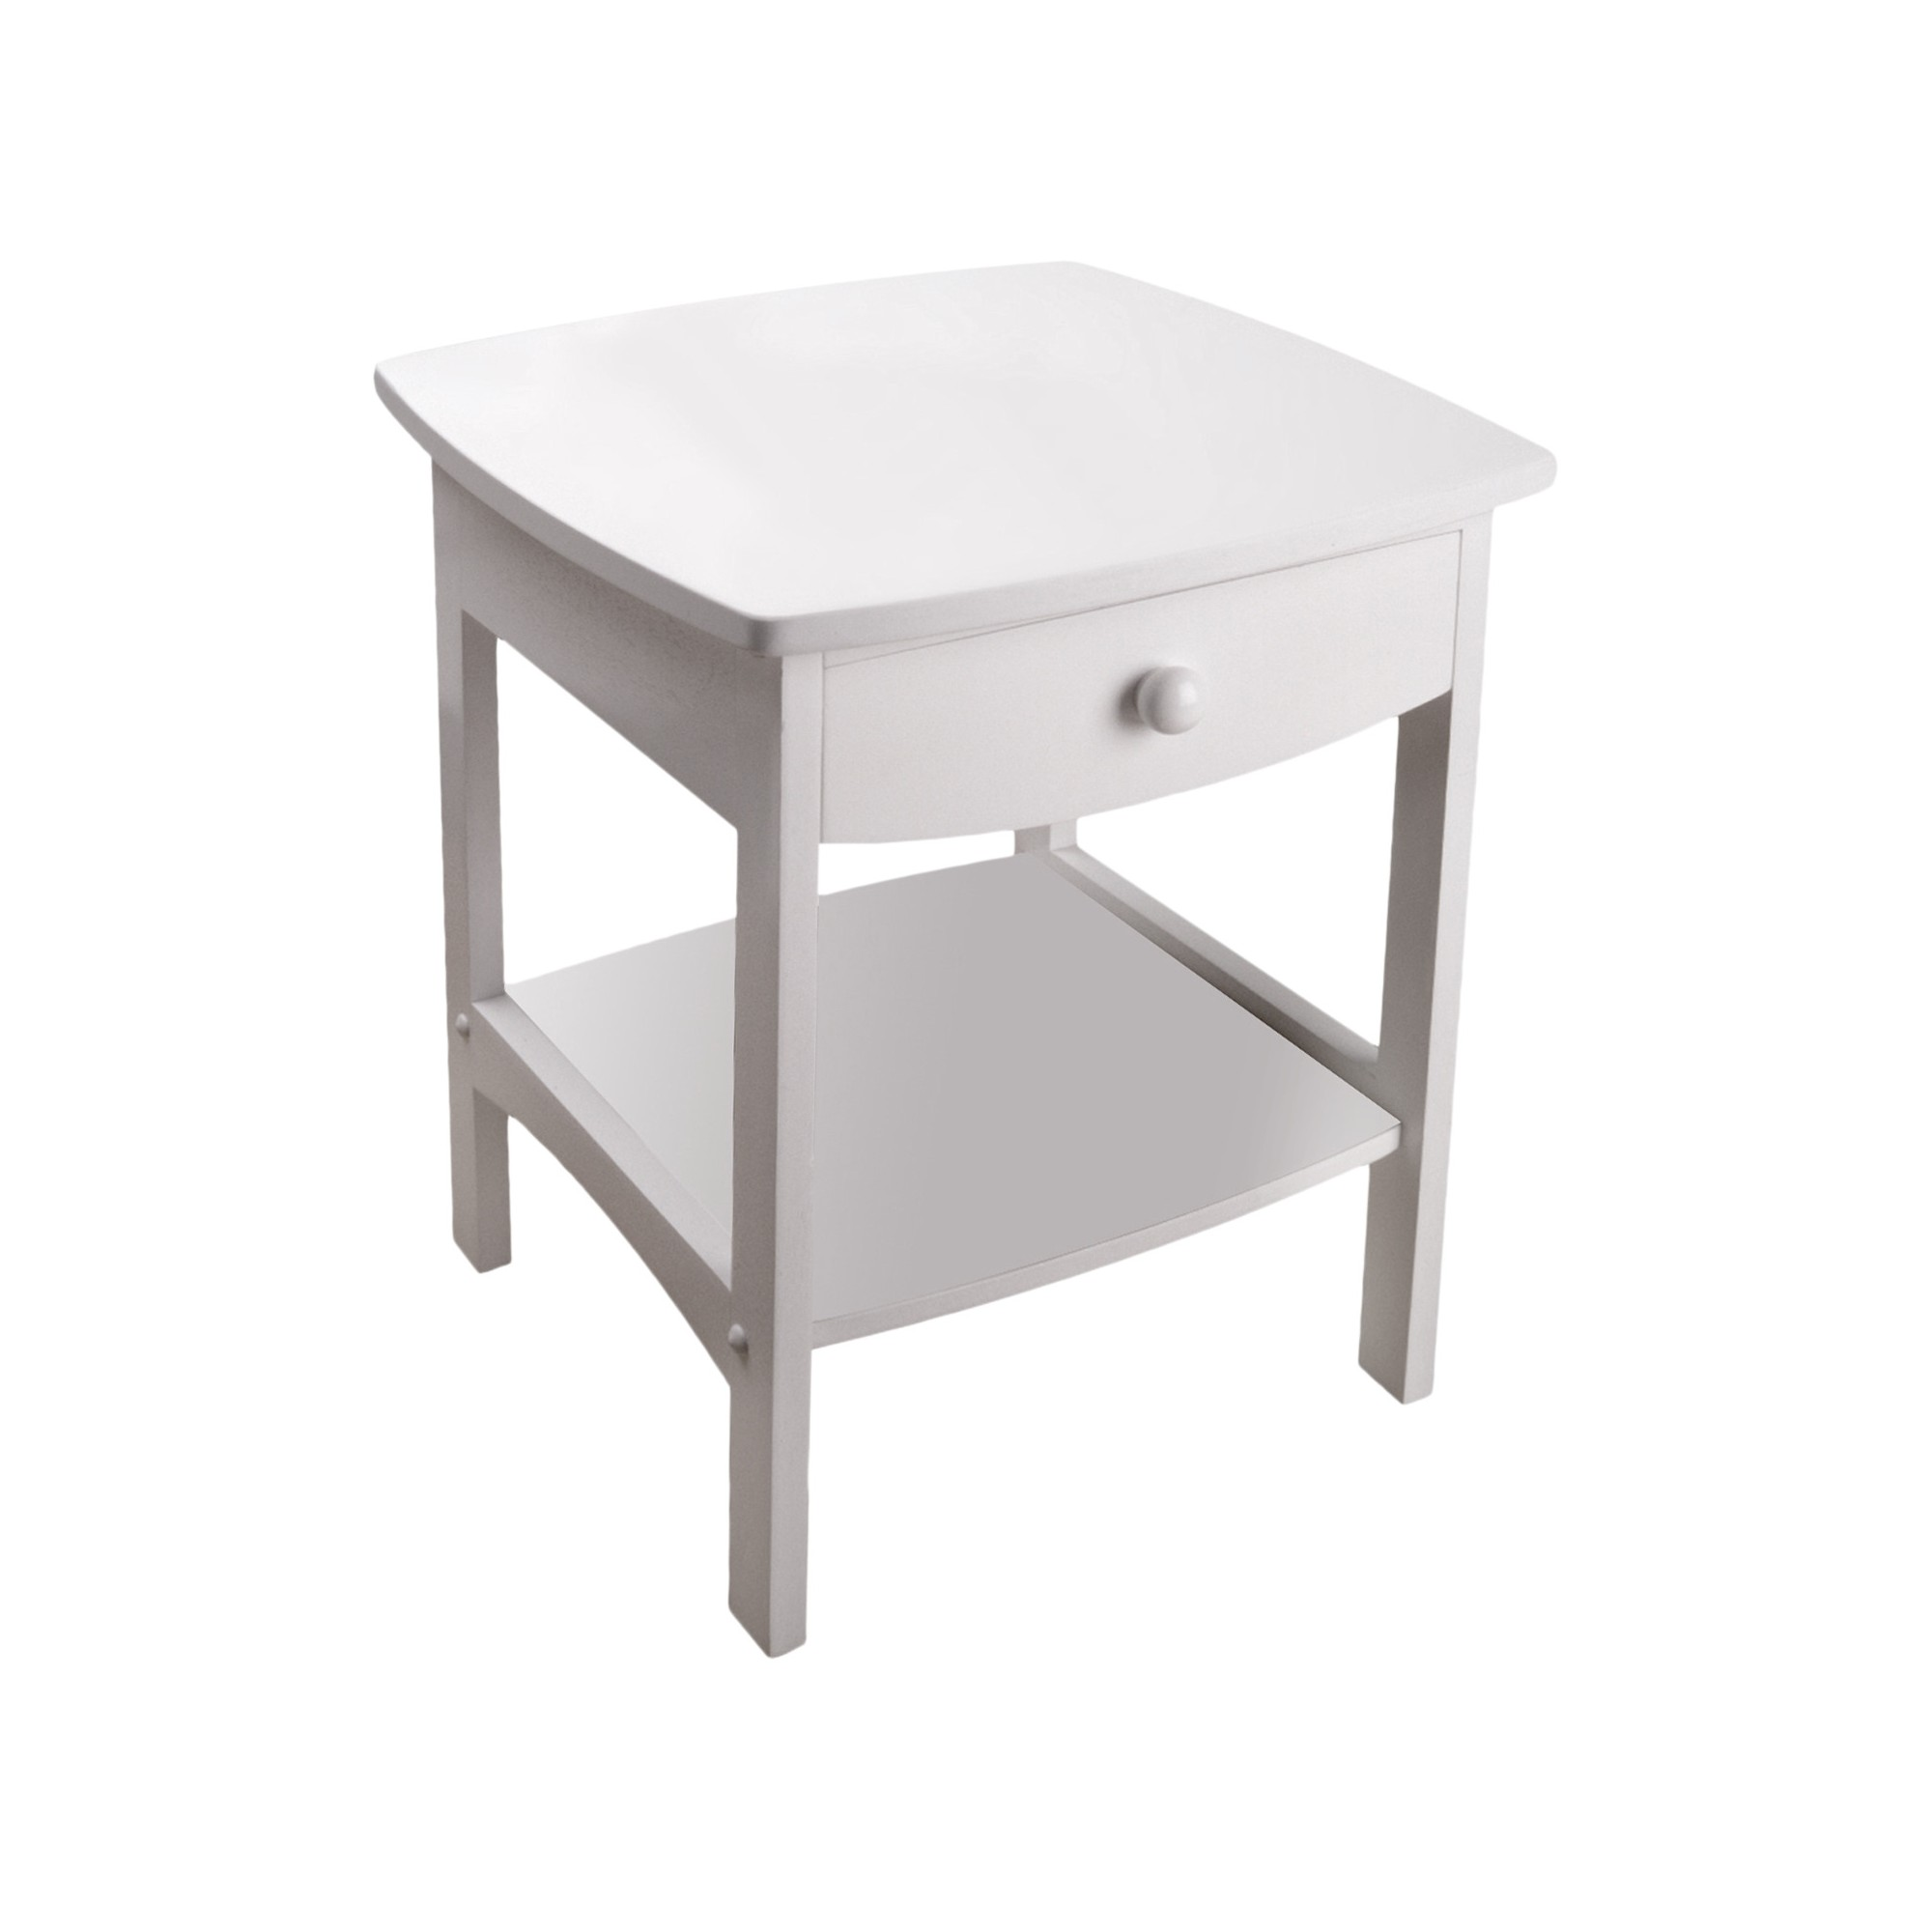 claire accent table white winsome products end tables wood brown leather chair scandinavian side round patio cover verizon tablet small tall coffee dorm room necessities ott cool